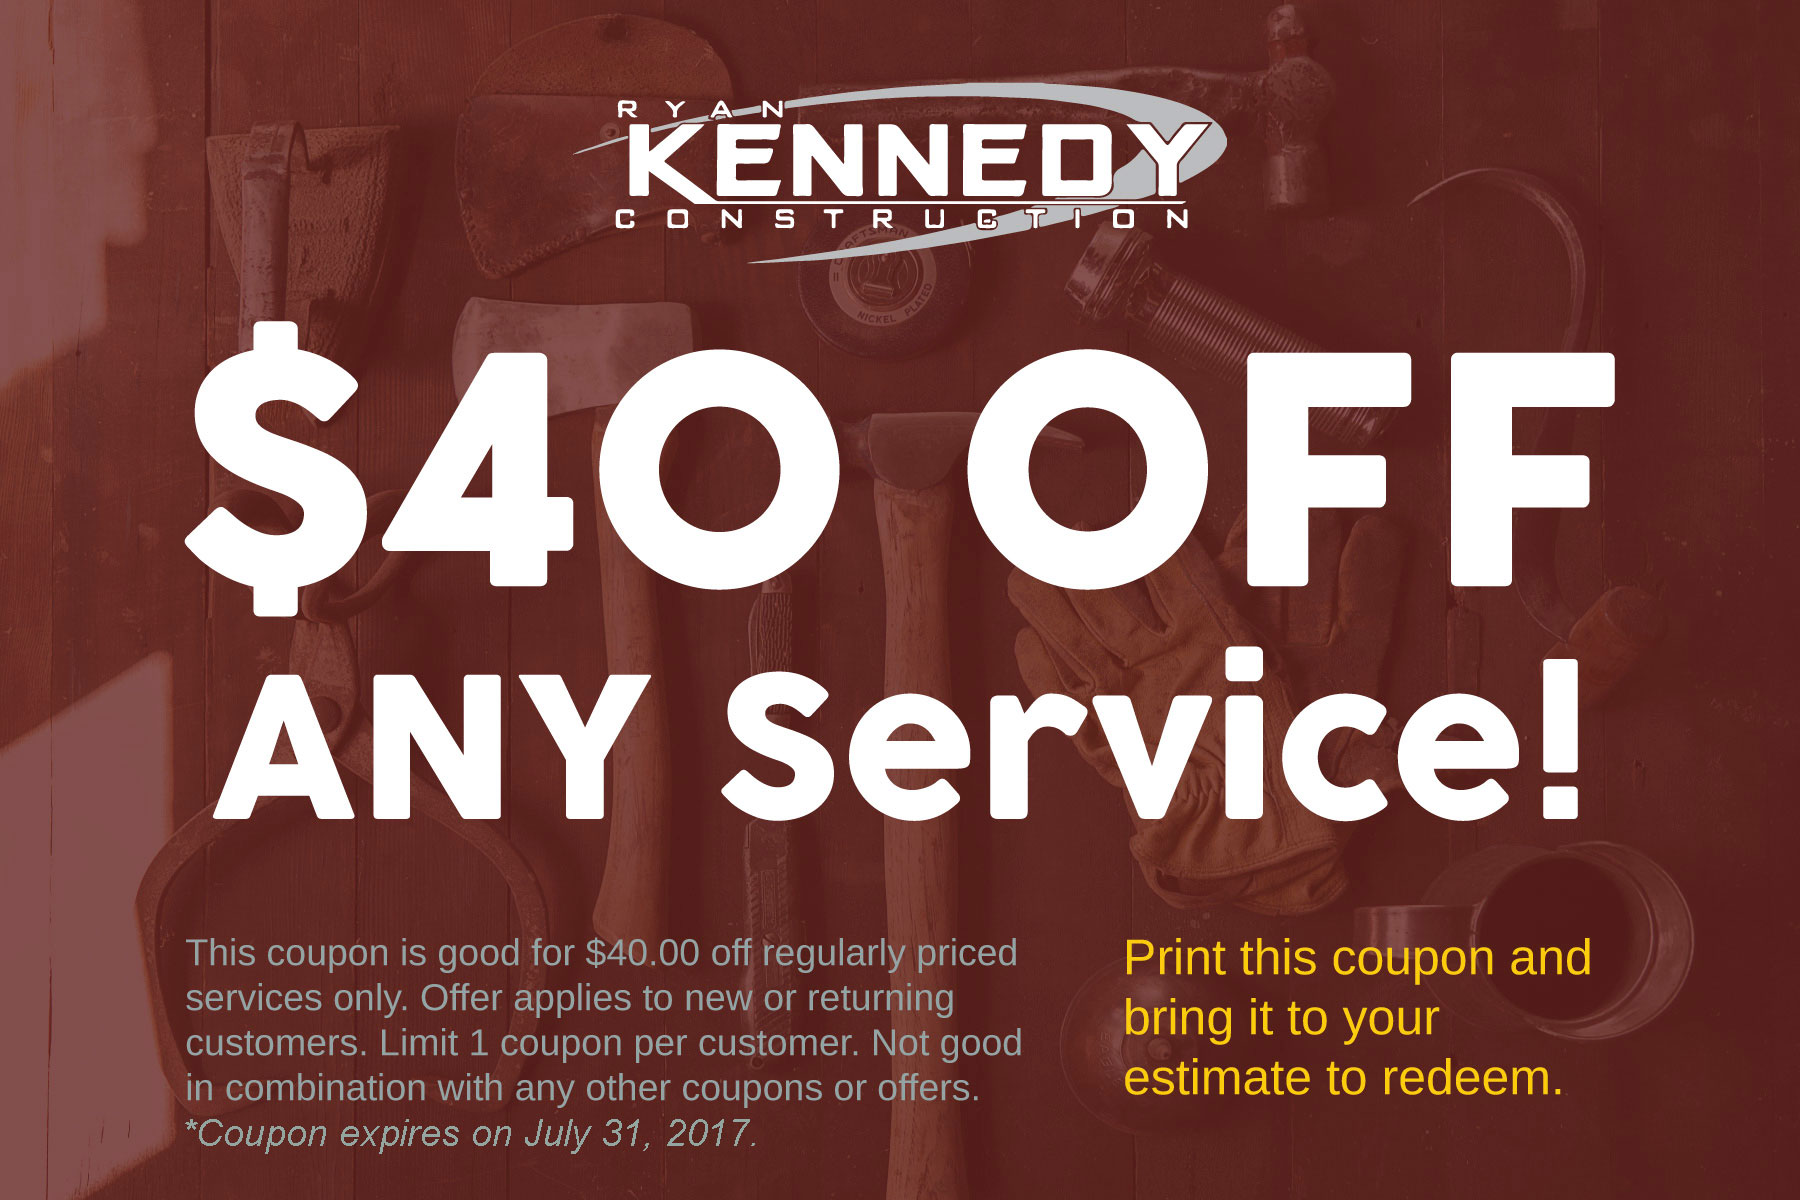 Ryan Kennedy Construction Coupon